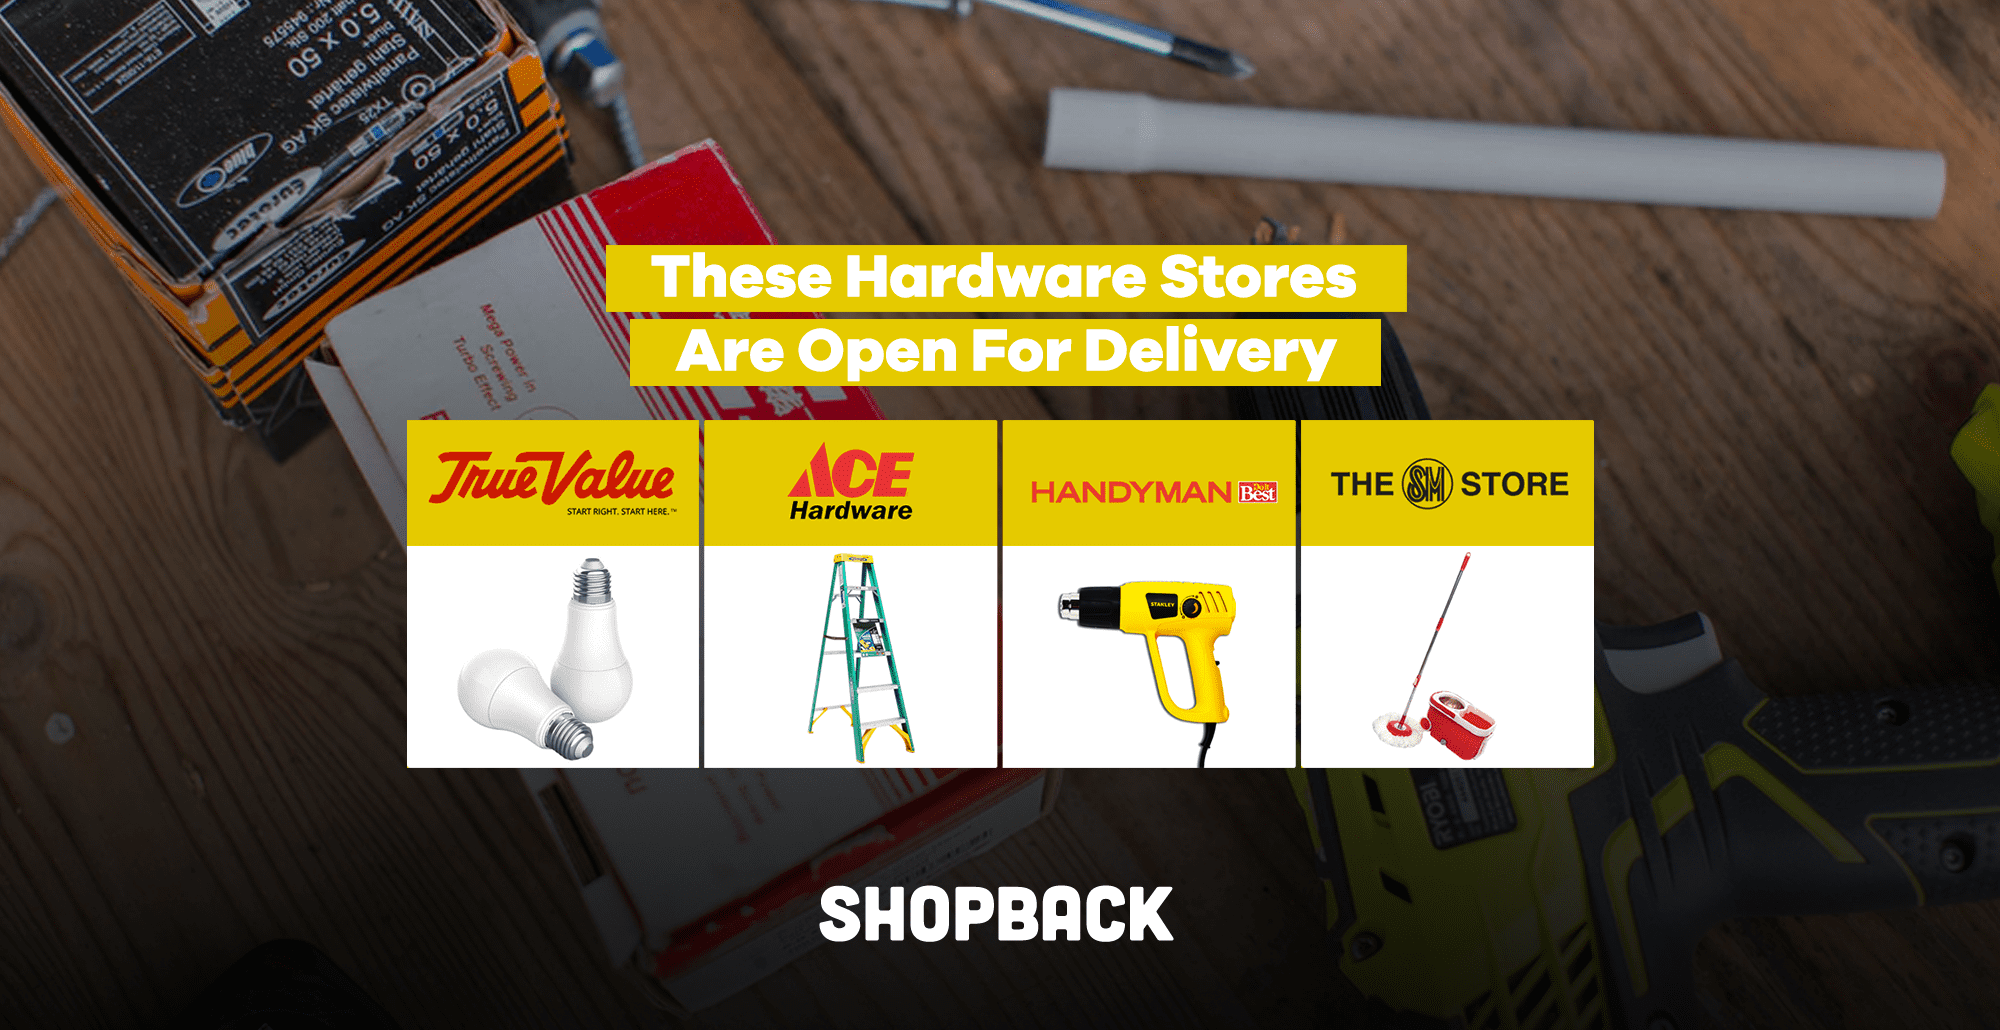 Six Hardware Stores That Are Open For Delivery During MECQ